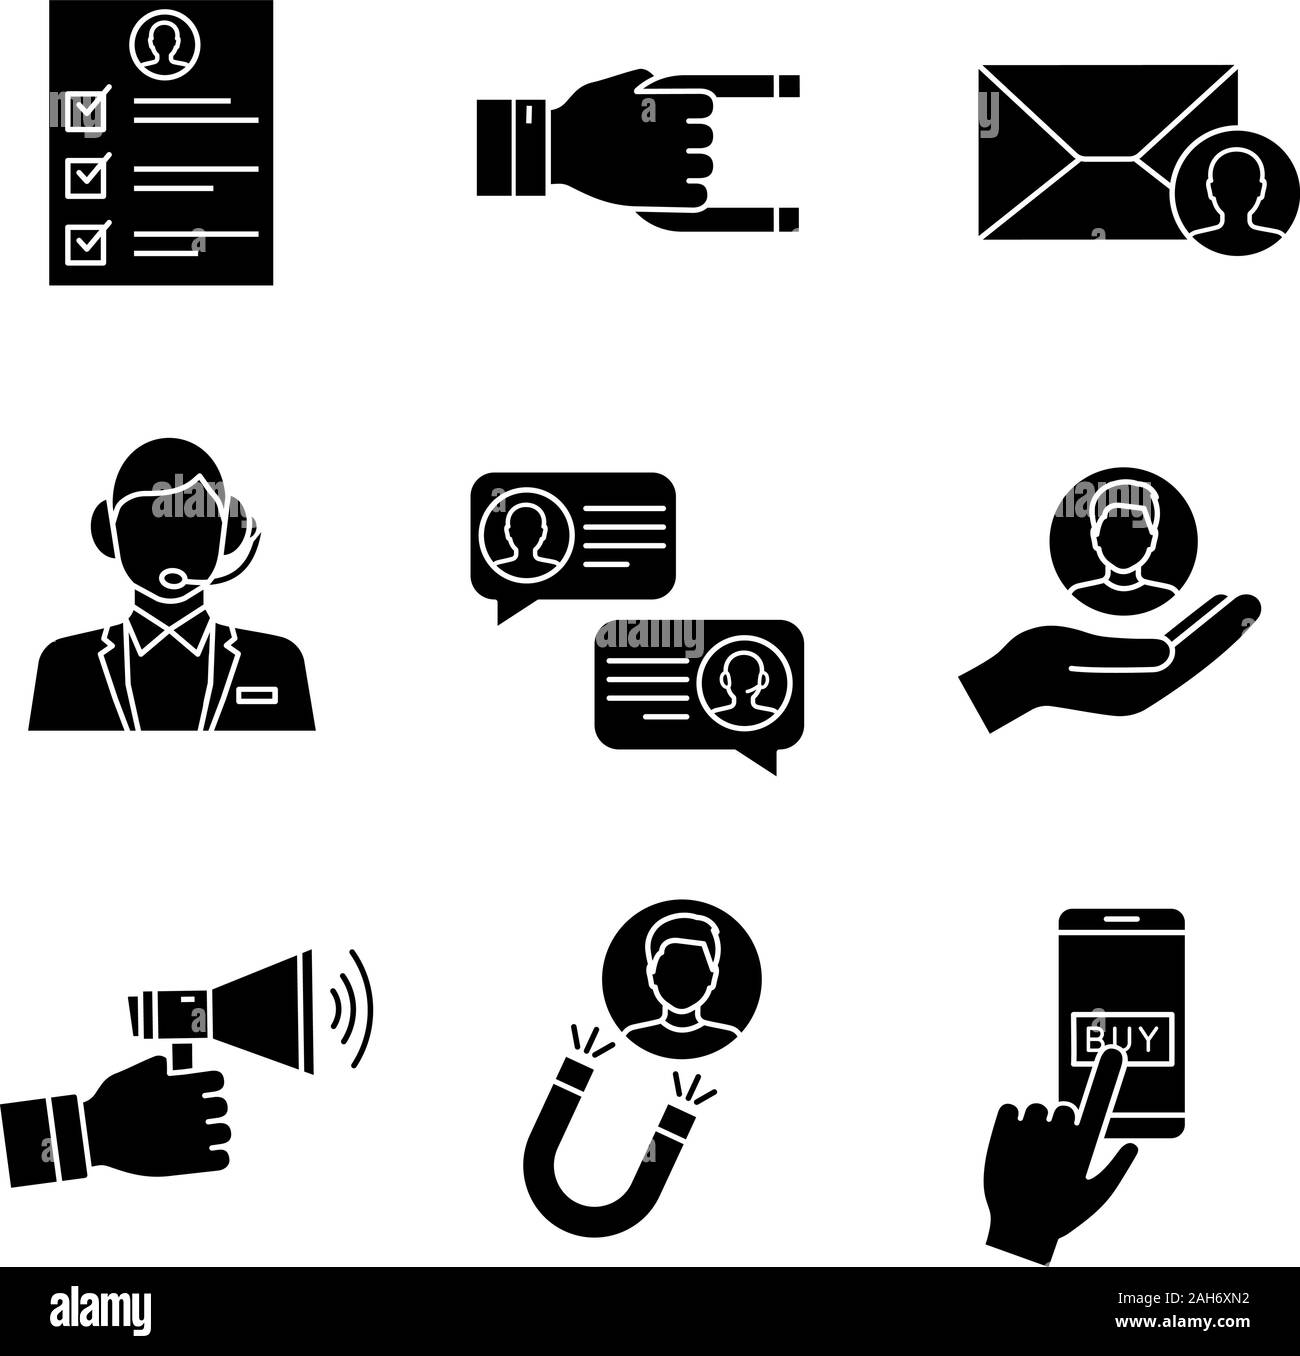 Customer Retention And Loyalty Glyph Icons Set Survey Client Attraction Target Mailing Call Center Support Chat Customer Service Advertising P Stock Vector Image Art Alamy